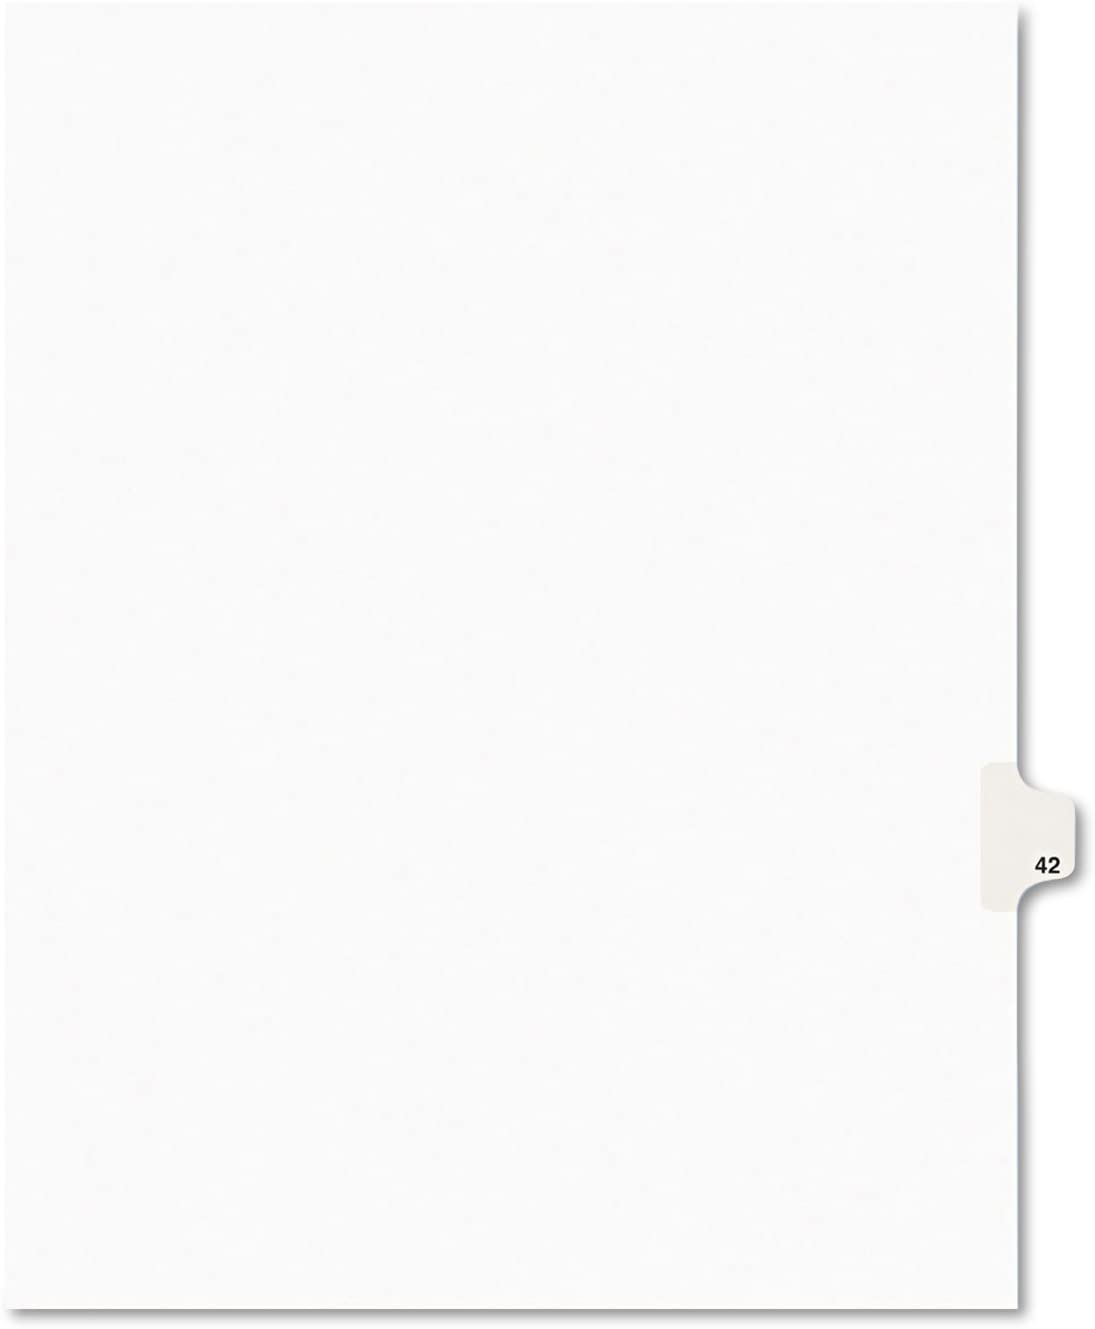 AVE01042 - Avery-Style Legal Max 79% OFF Divider Super Special SALE held Tab Side